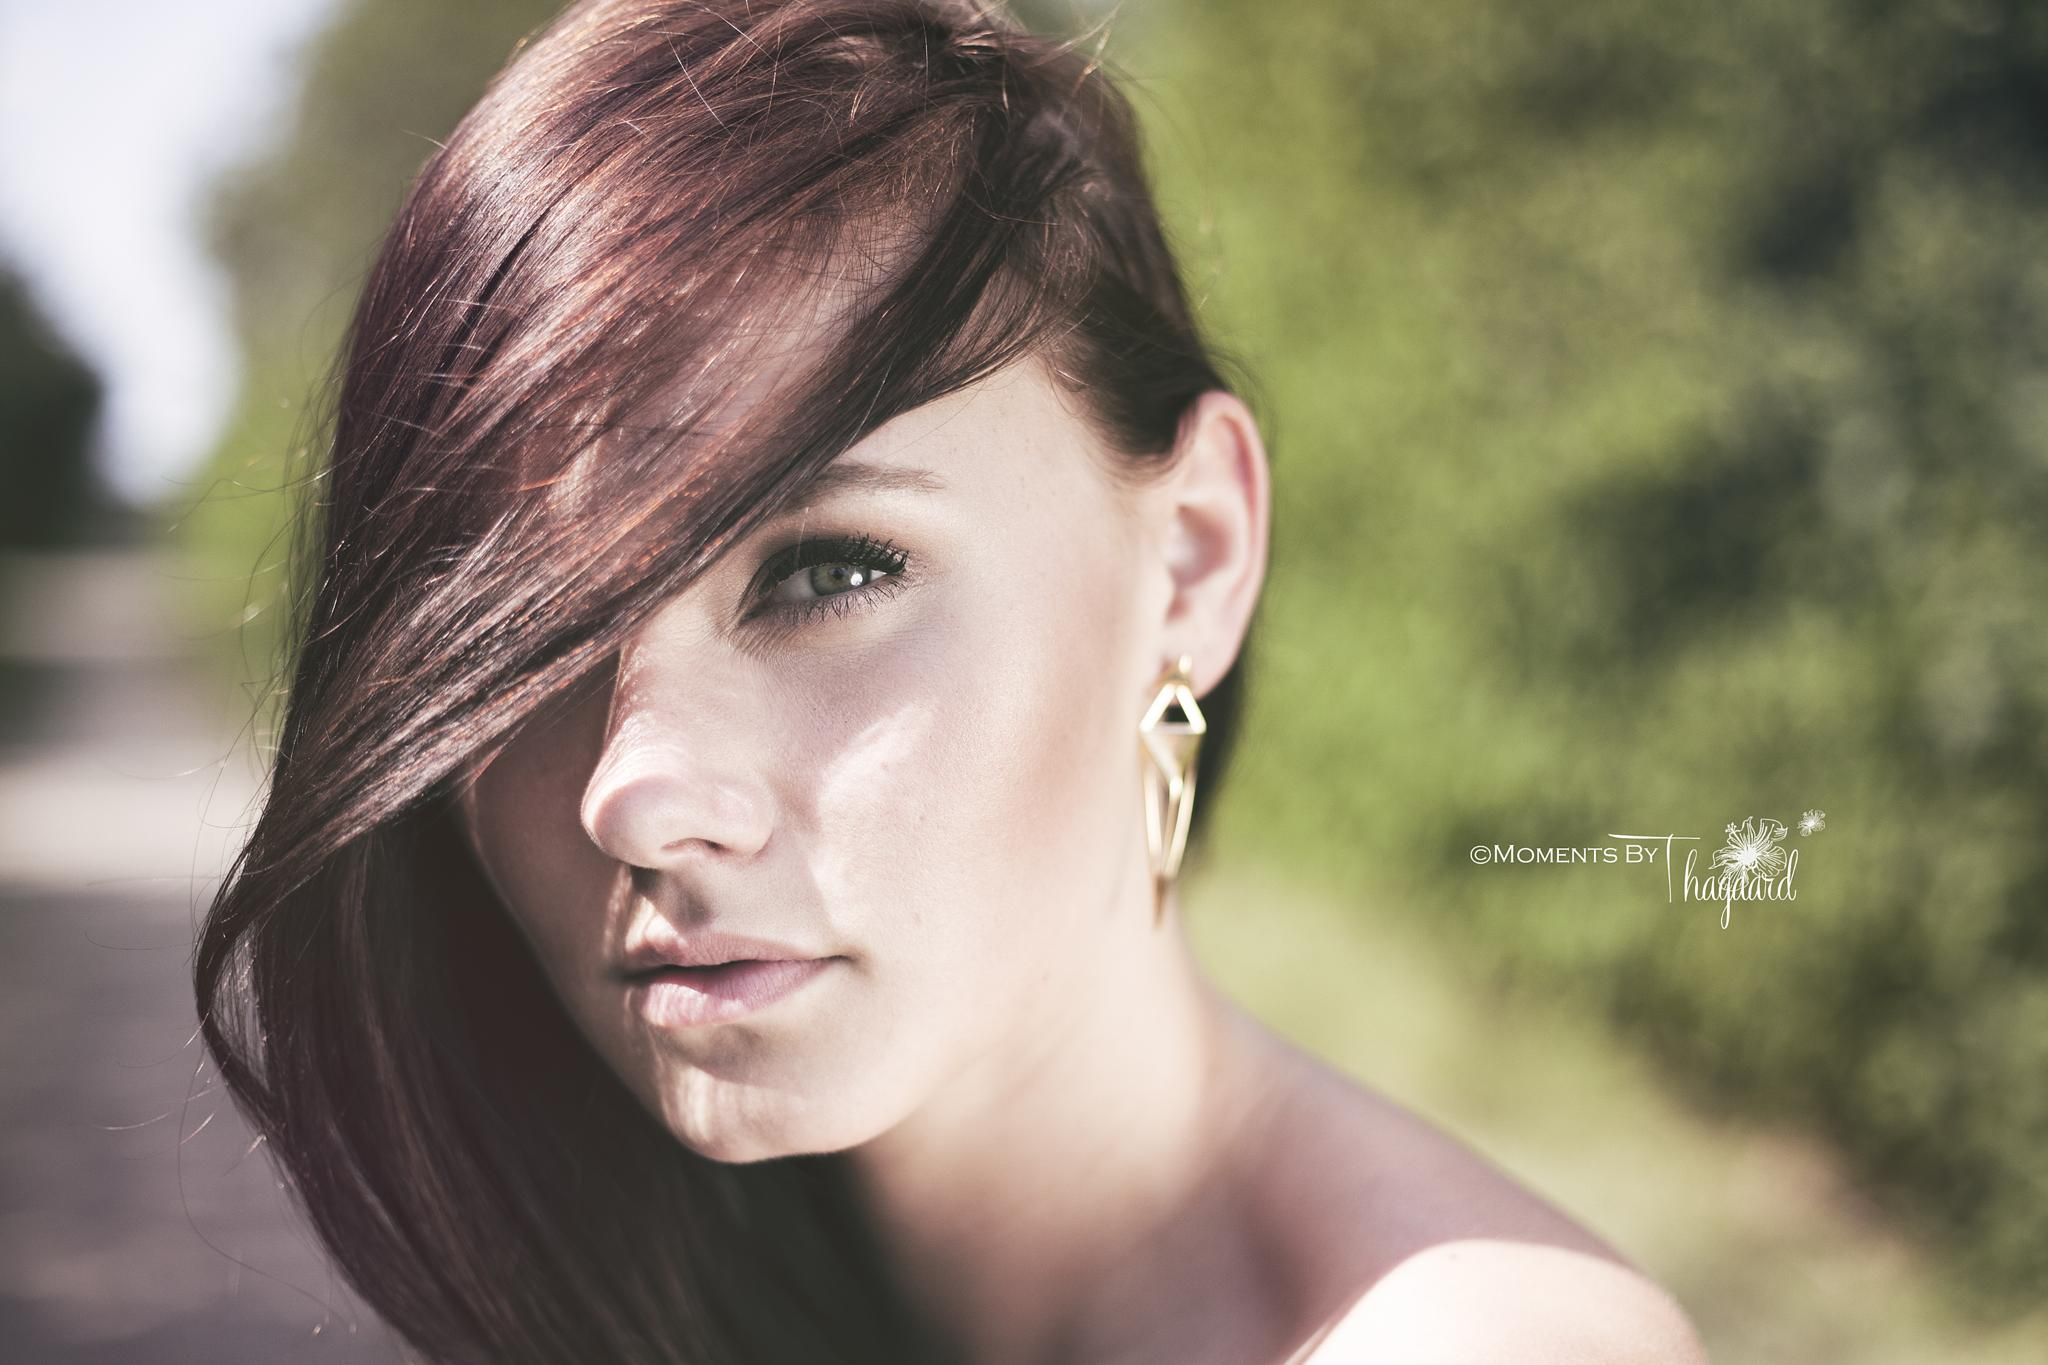 Maria by Moments By Thagaard